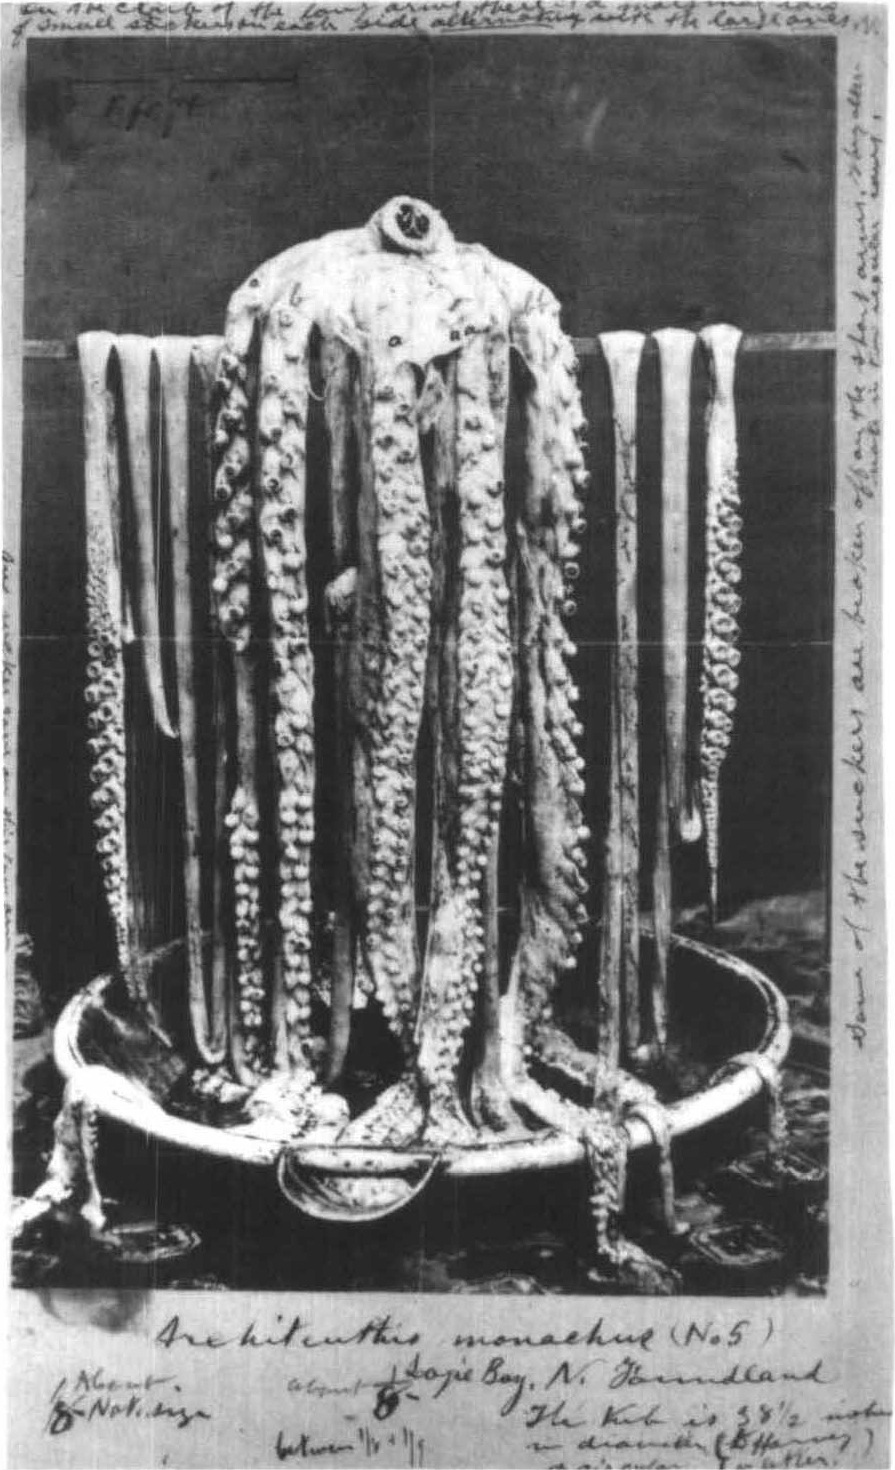 List of giant squid specimens and